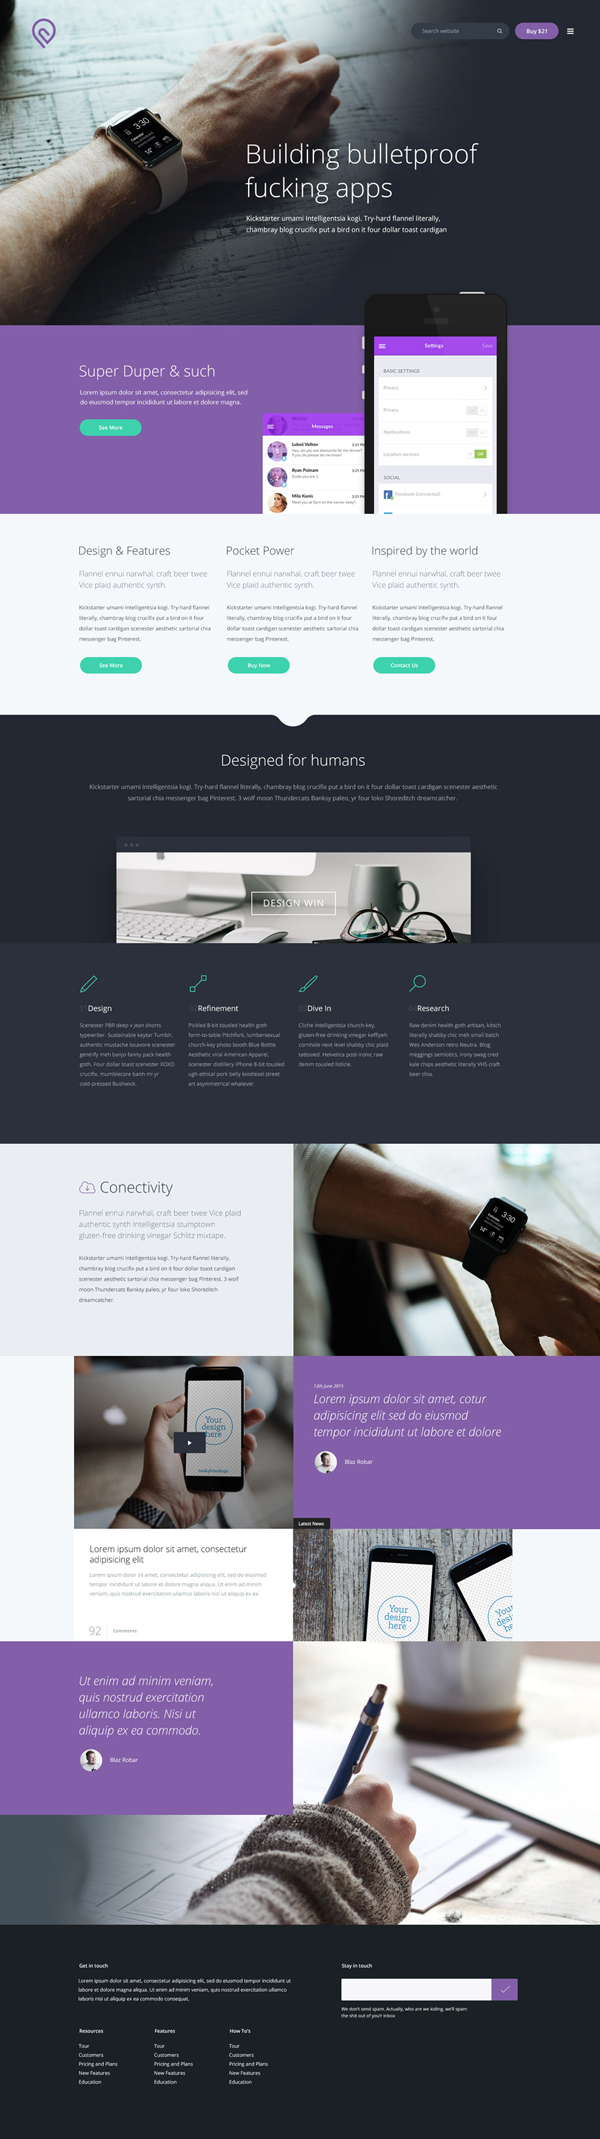 Modern Free PSD Website Template